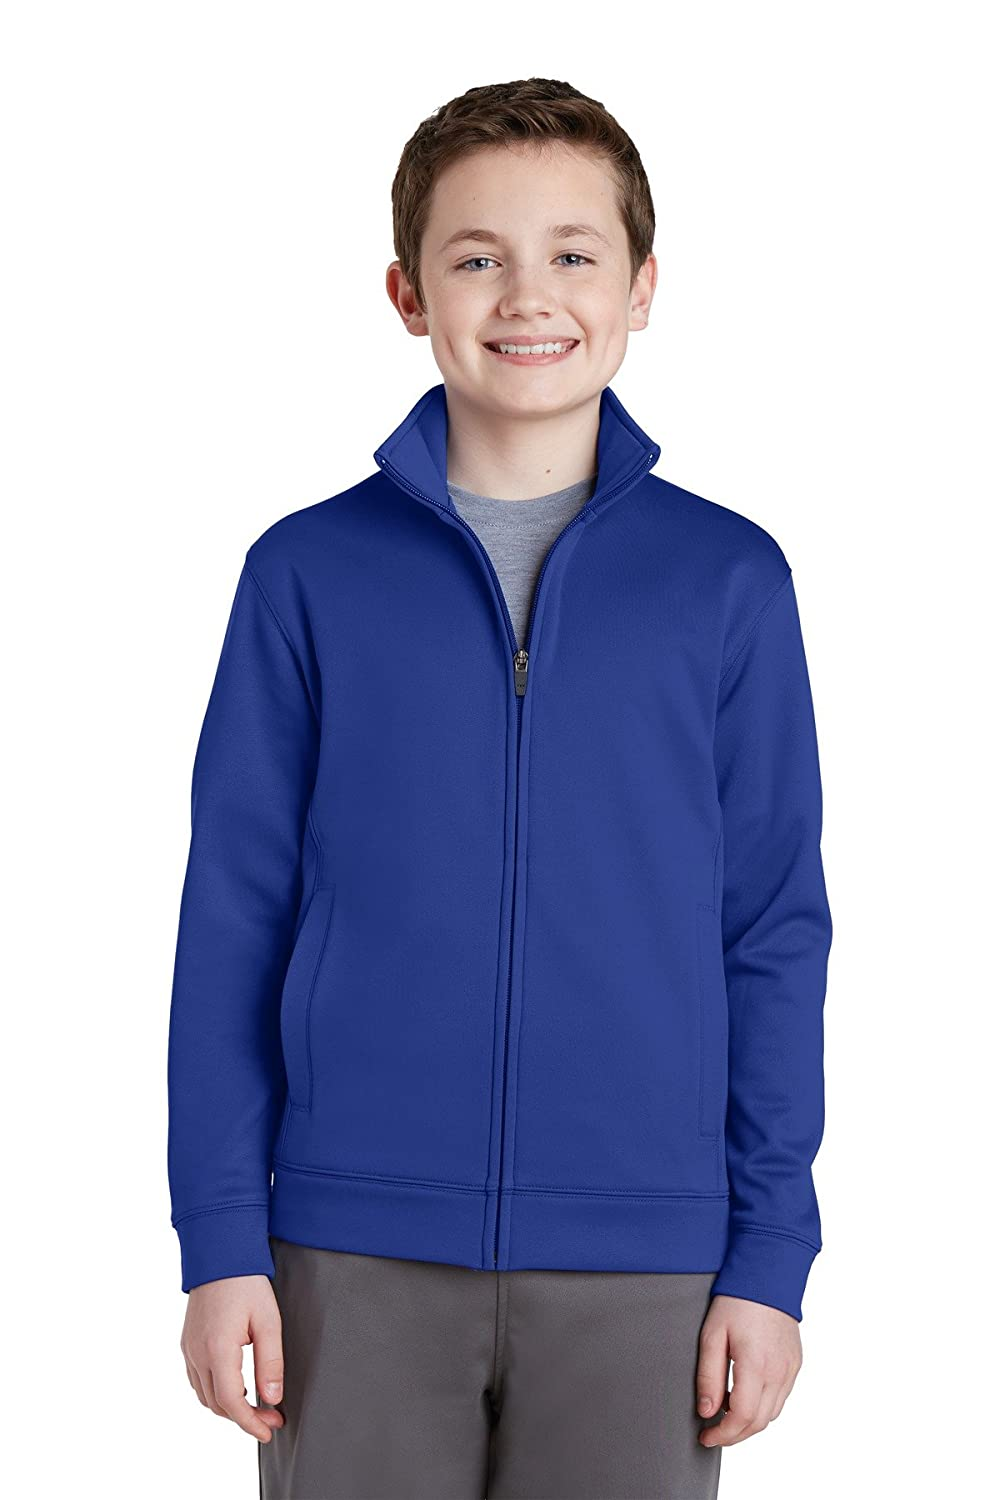 Sport-Tek Boy's Fleece Full-Zip Jacket Sport-tek YST241